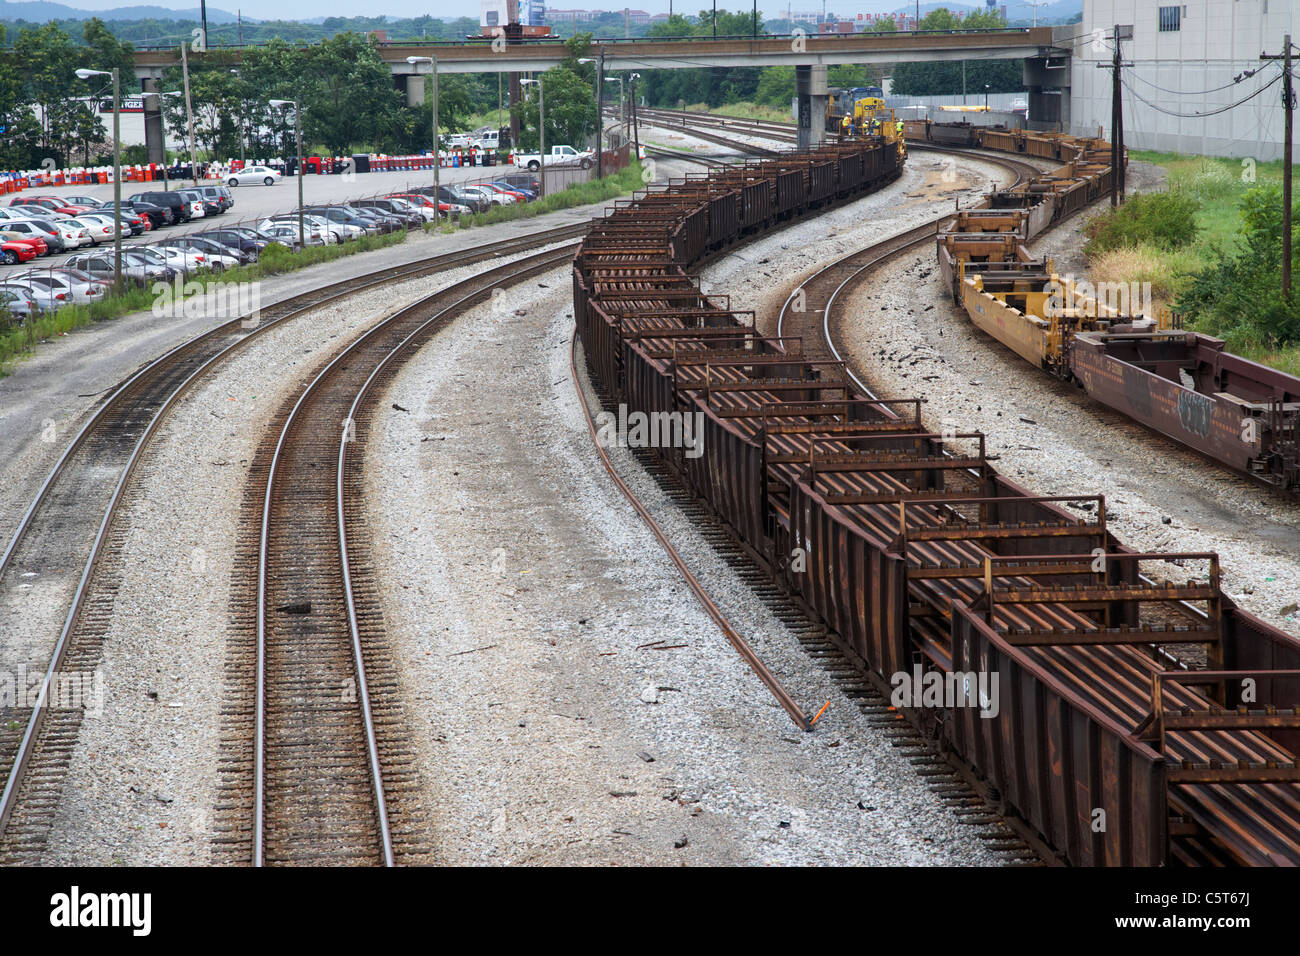 empty freight cars on railroad tracks in downtown Nashville Tennessee USA - Stock Image